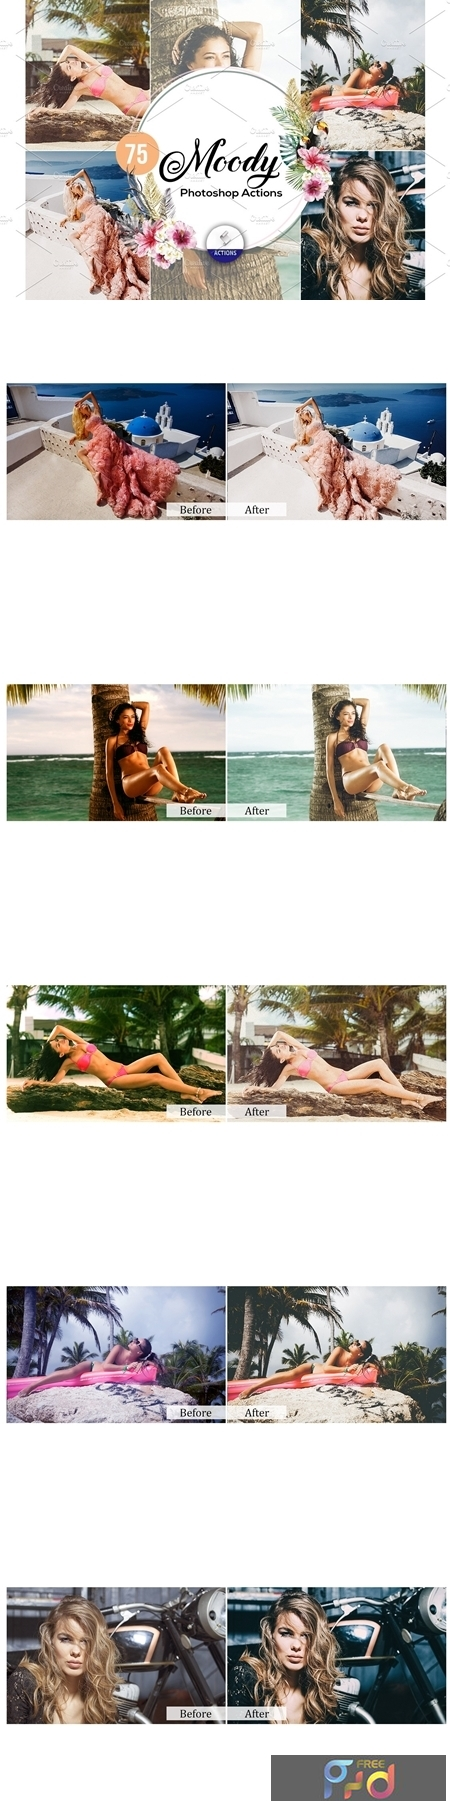 75 Moody Photoshop Actions 3937908 1